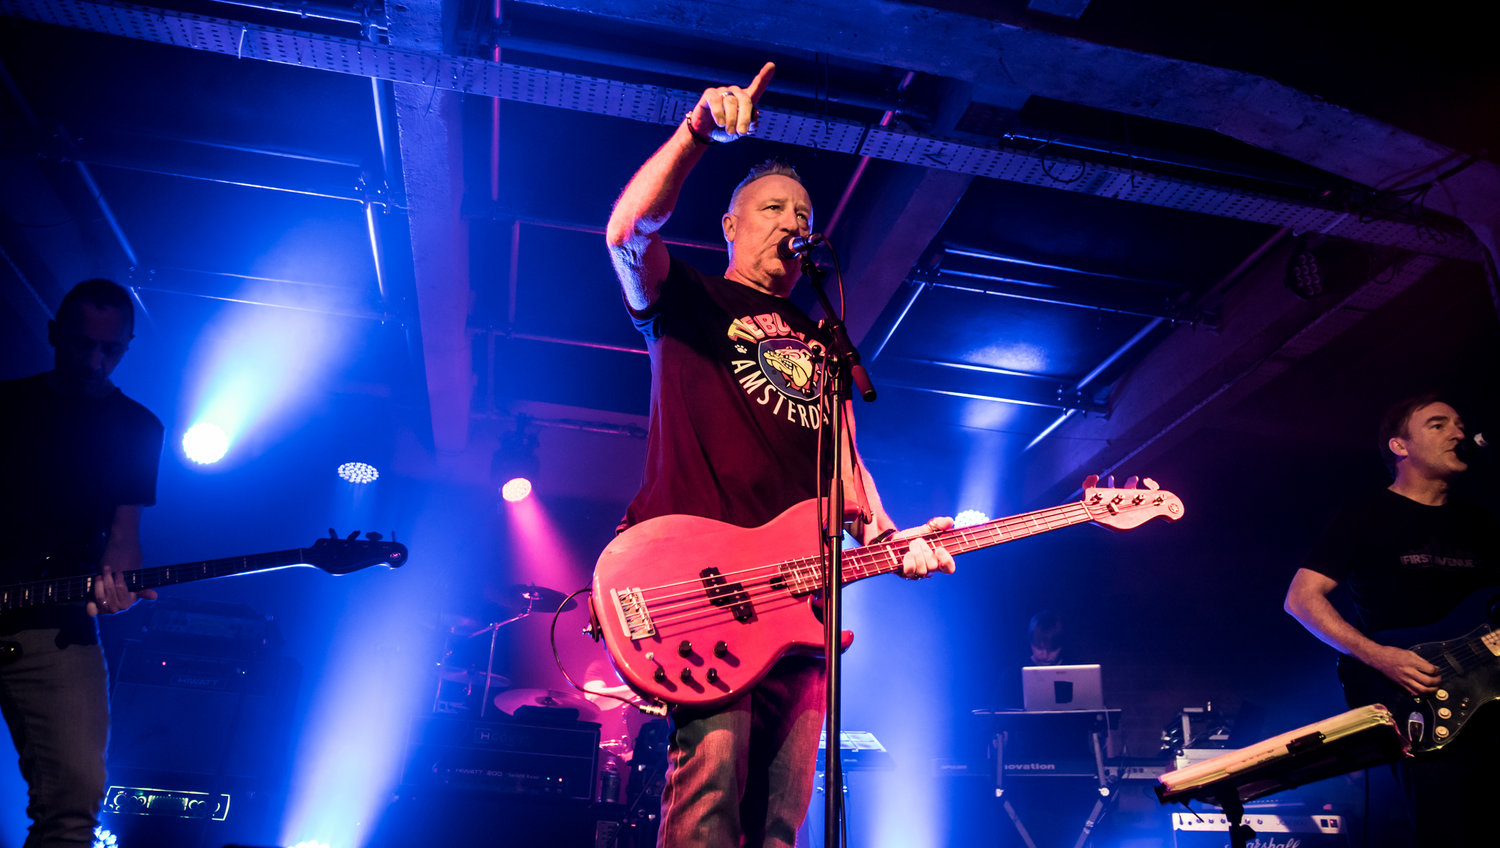 PETER HOOK & THE LIGHT PERFORMING AT GLASGOW'S SWG3 - TV STUDIO - 30.09.2018 PICTURE BY: STEPHEN WILSON PHOTOGRAPHY